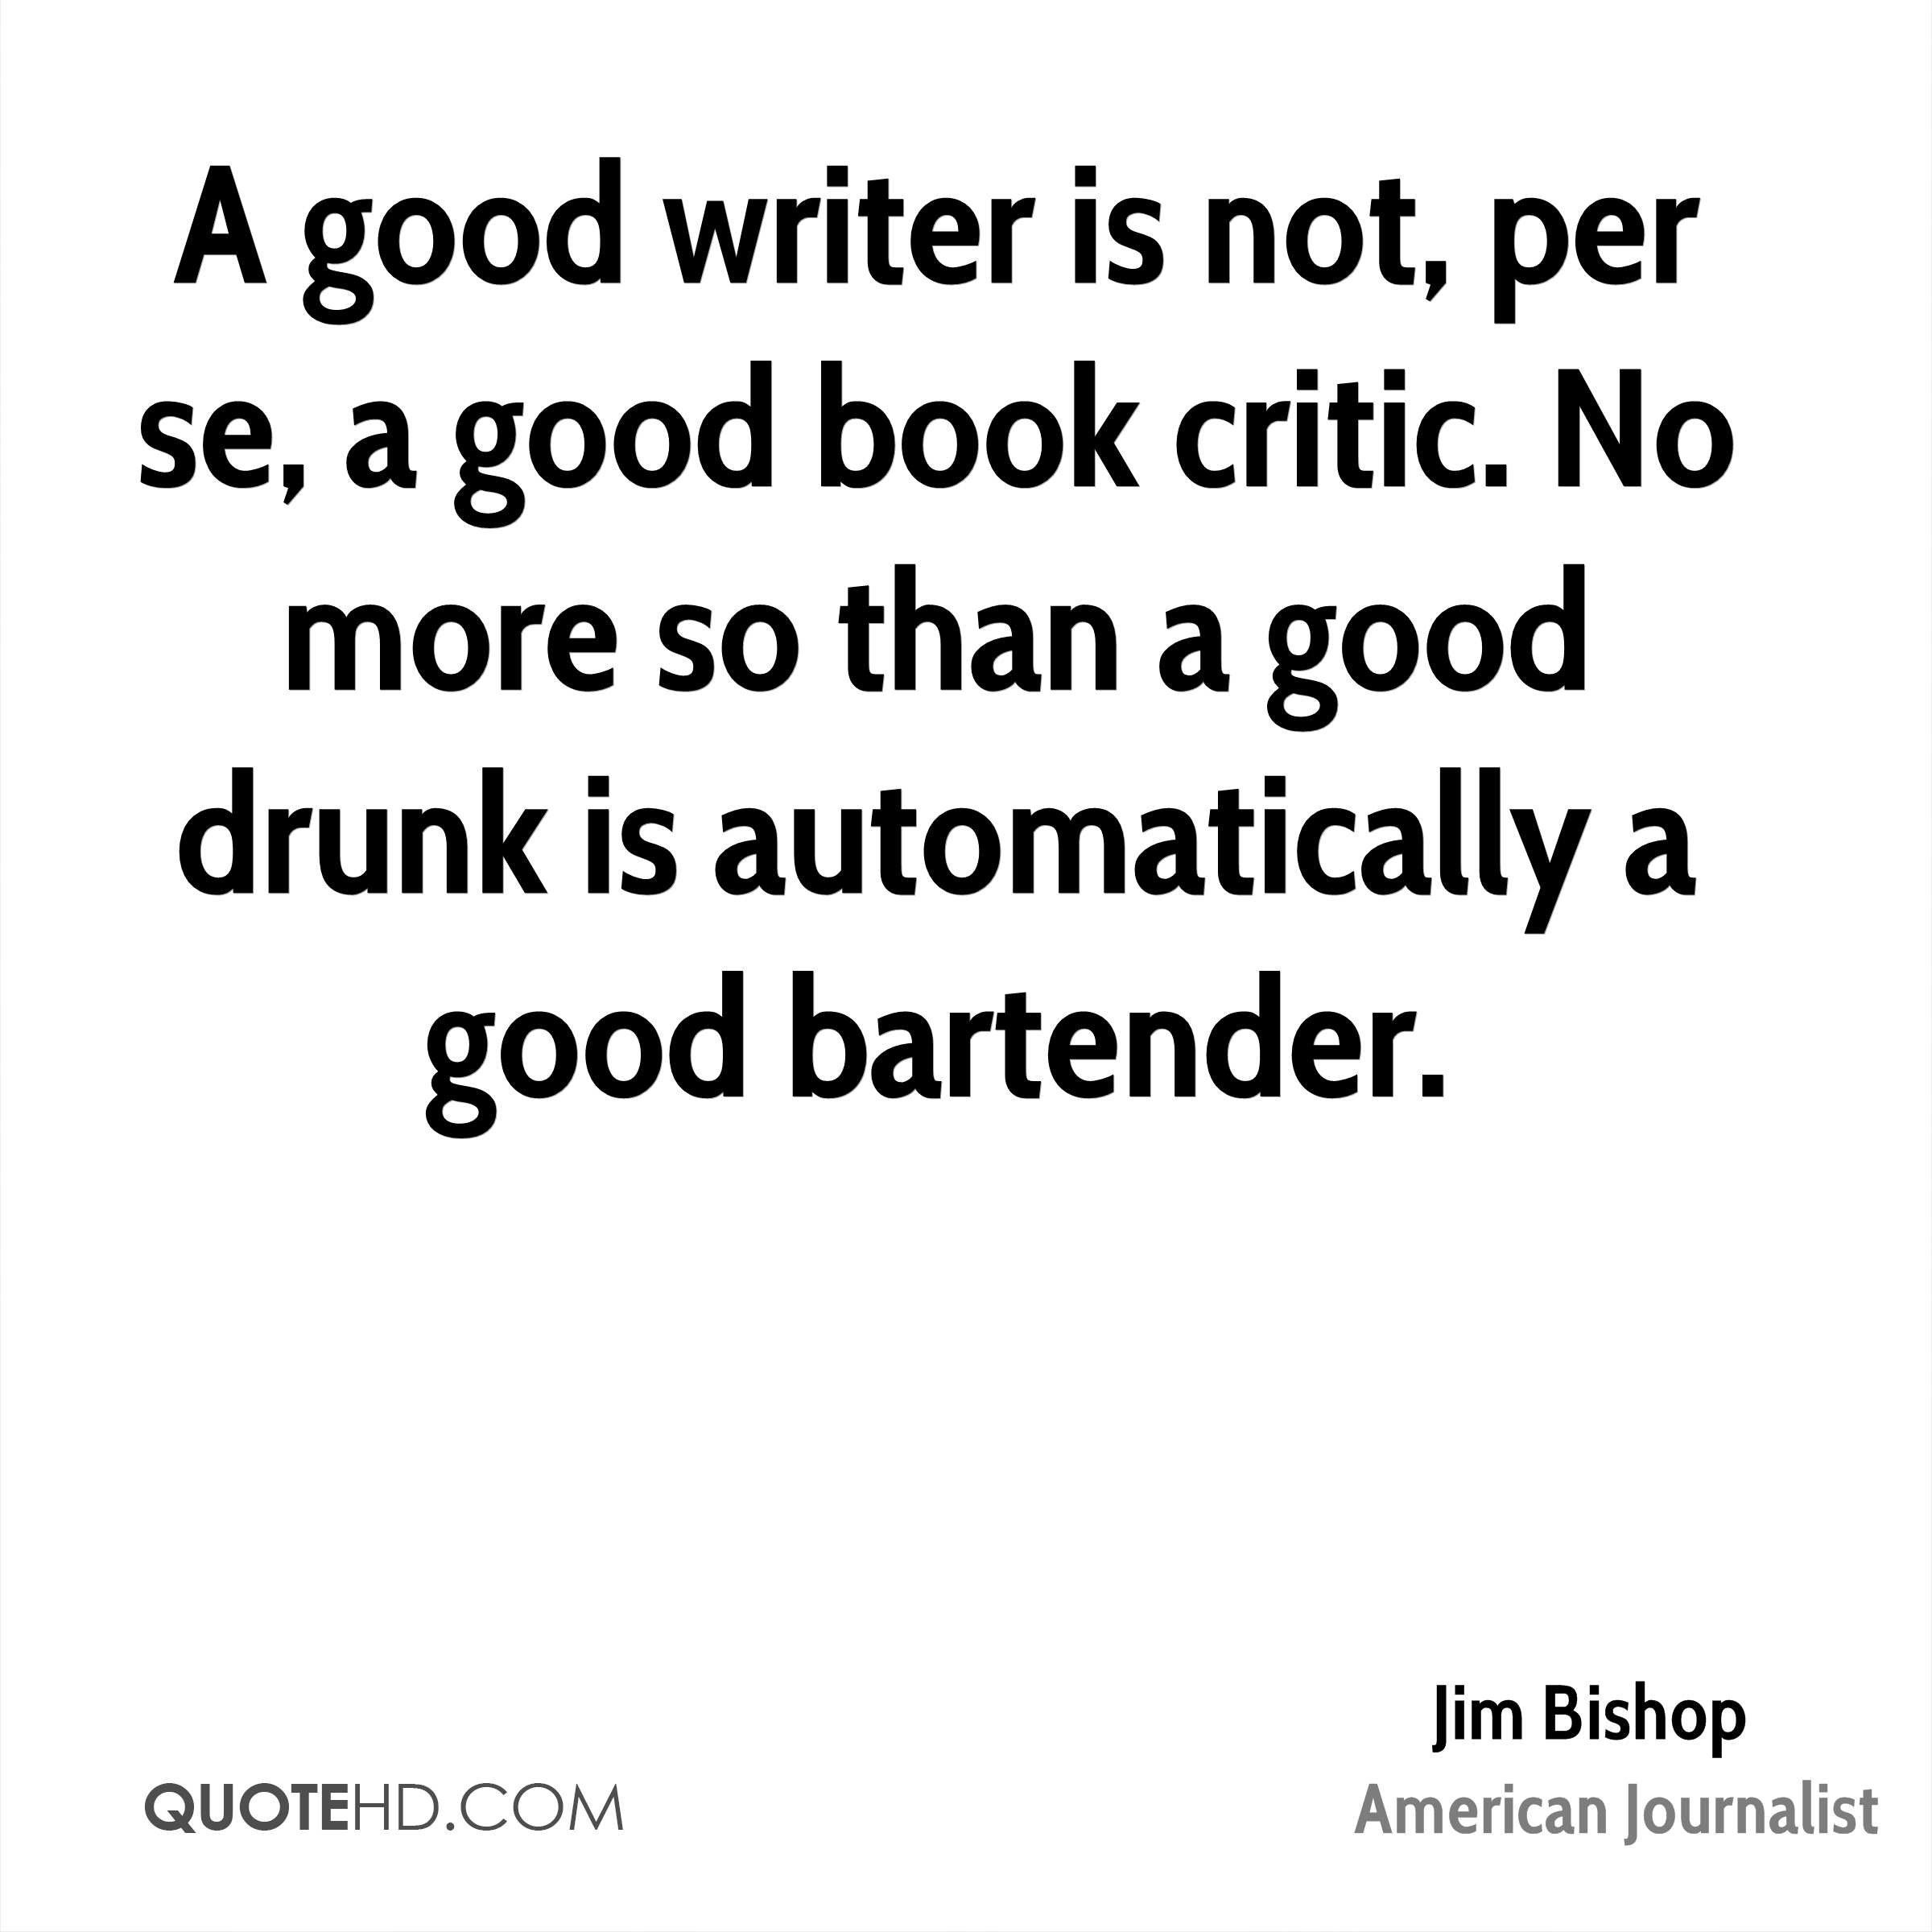 A good writer is not, per se, a good book critic. No more so than a good drunk is automatically a good bartender.